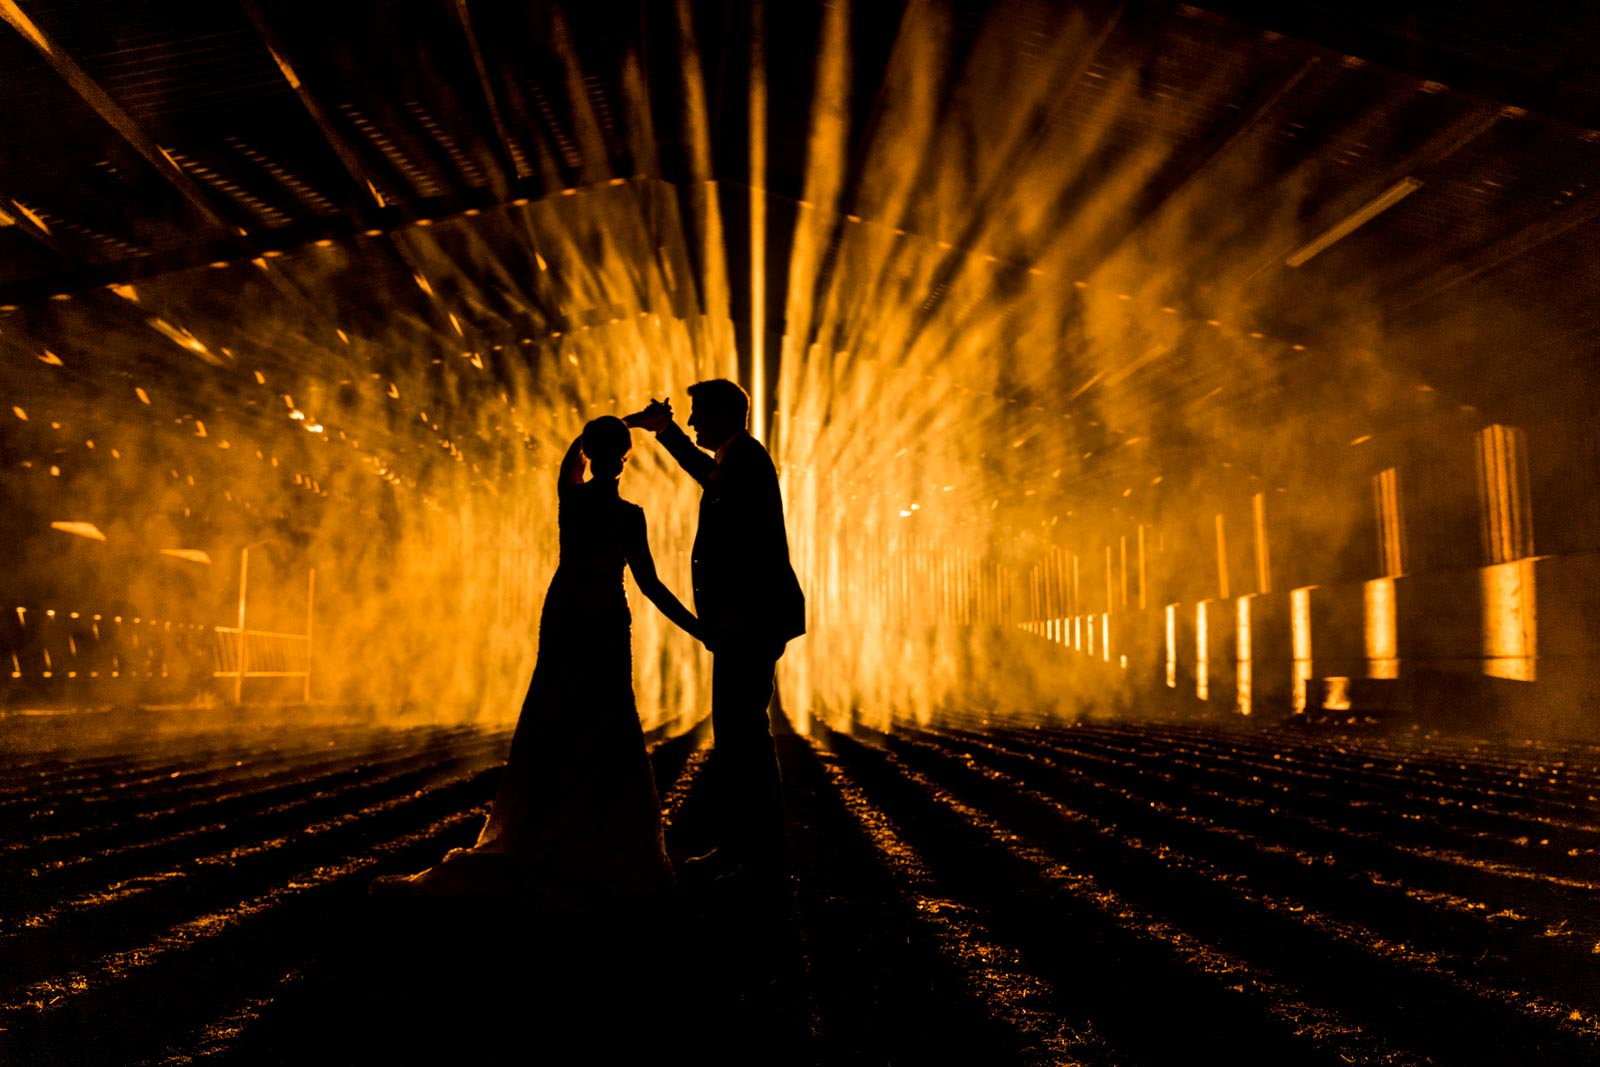 Stunning wedding silhouette photo of a couple in a barn at night, photo taken at Wood Farm Everdon